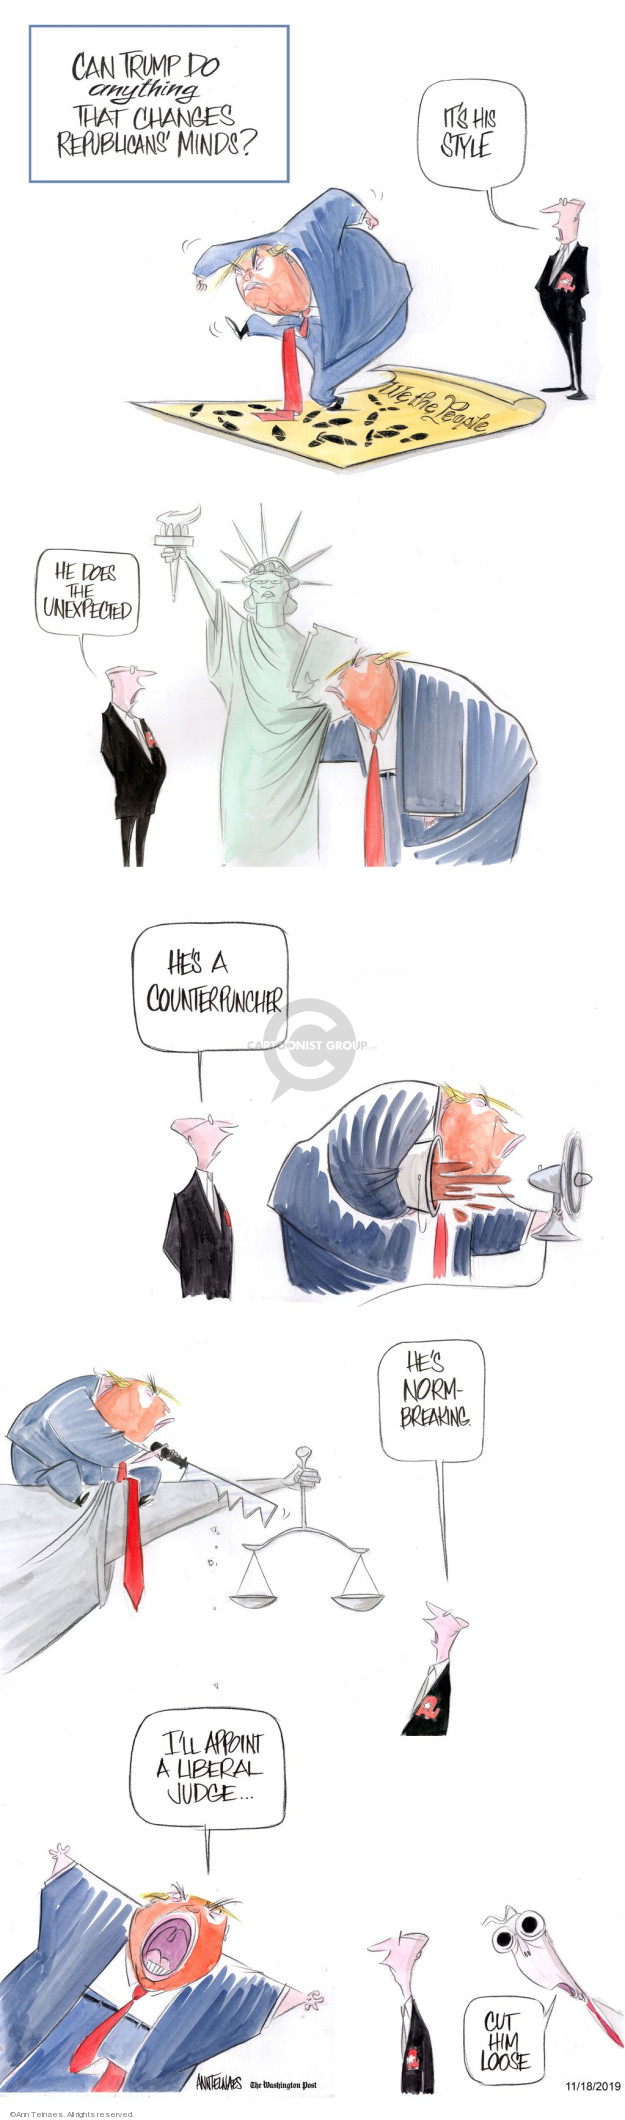 Ann Telnaes  Ann Telnaes' Editorial Cartoons 2019-11-18 congressional leadership